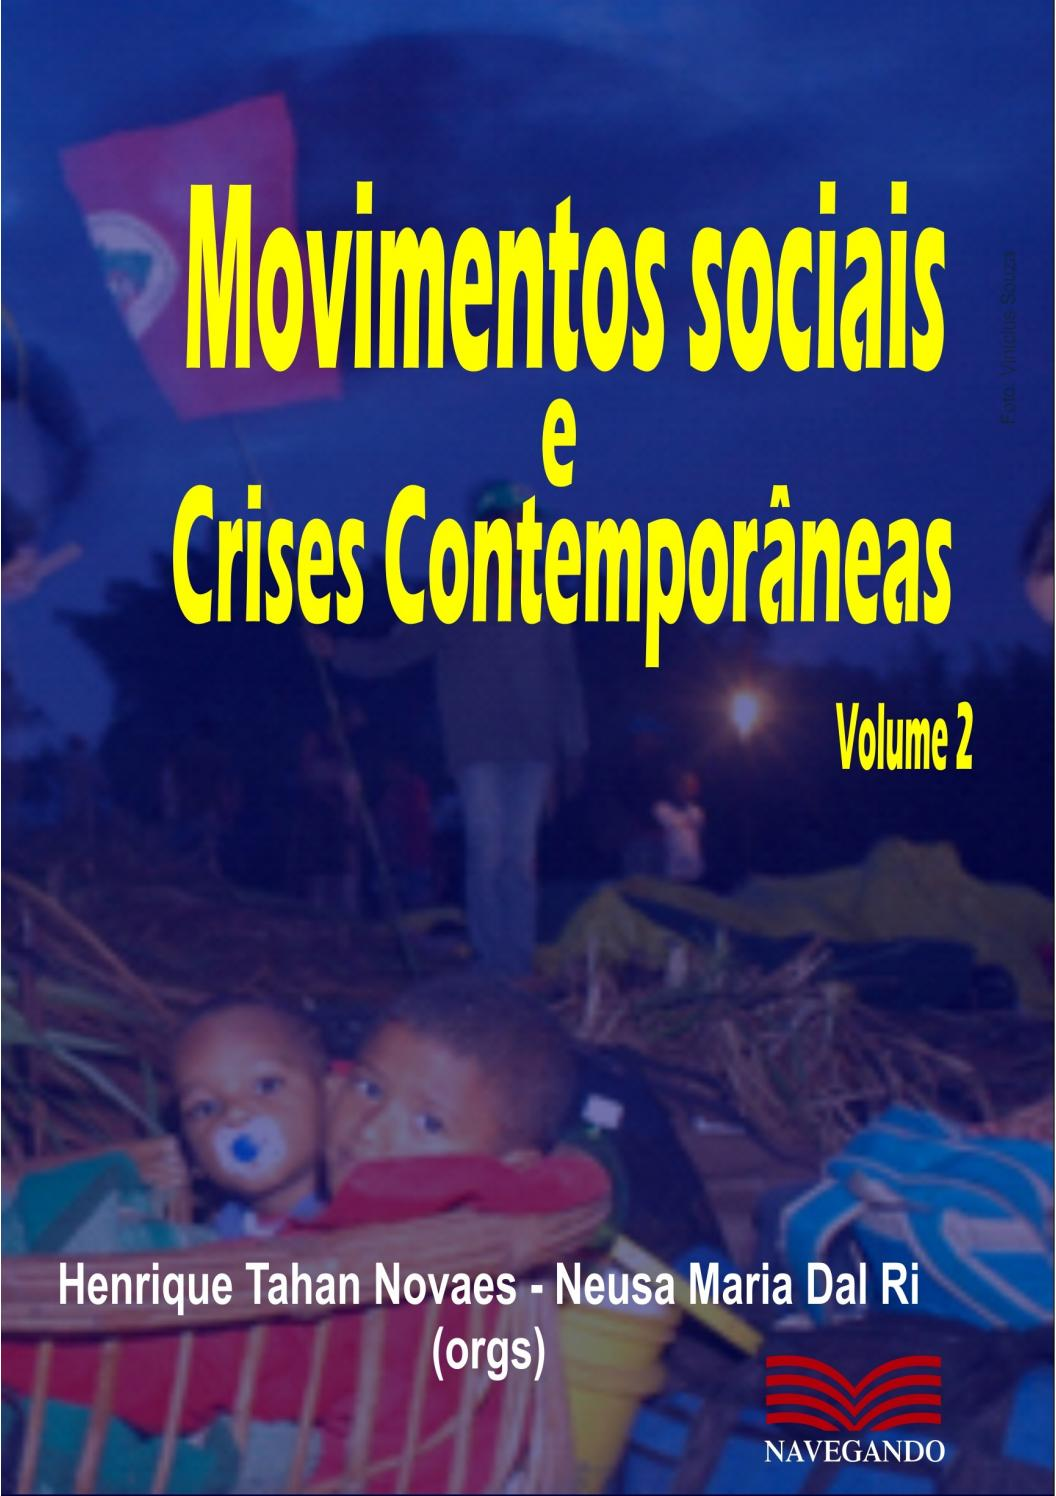 Movimentos Sociais e Crises Contemporâneas - volume 2 by Carlos Lucena -  issuu fc713d61bdf81